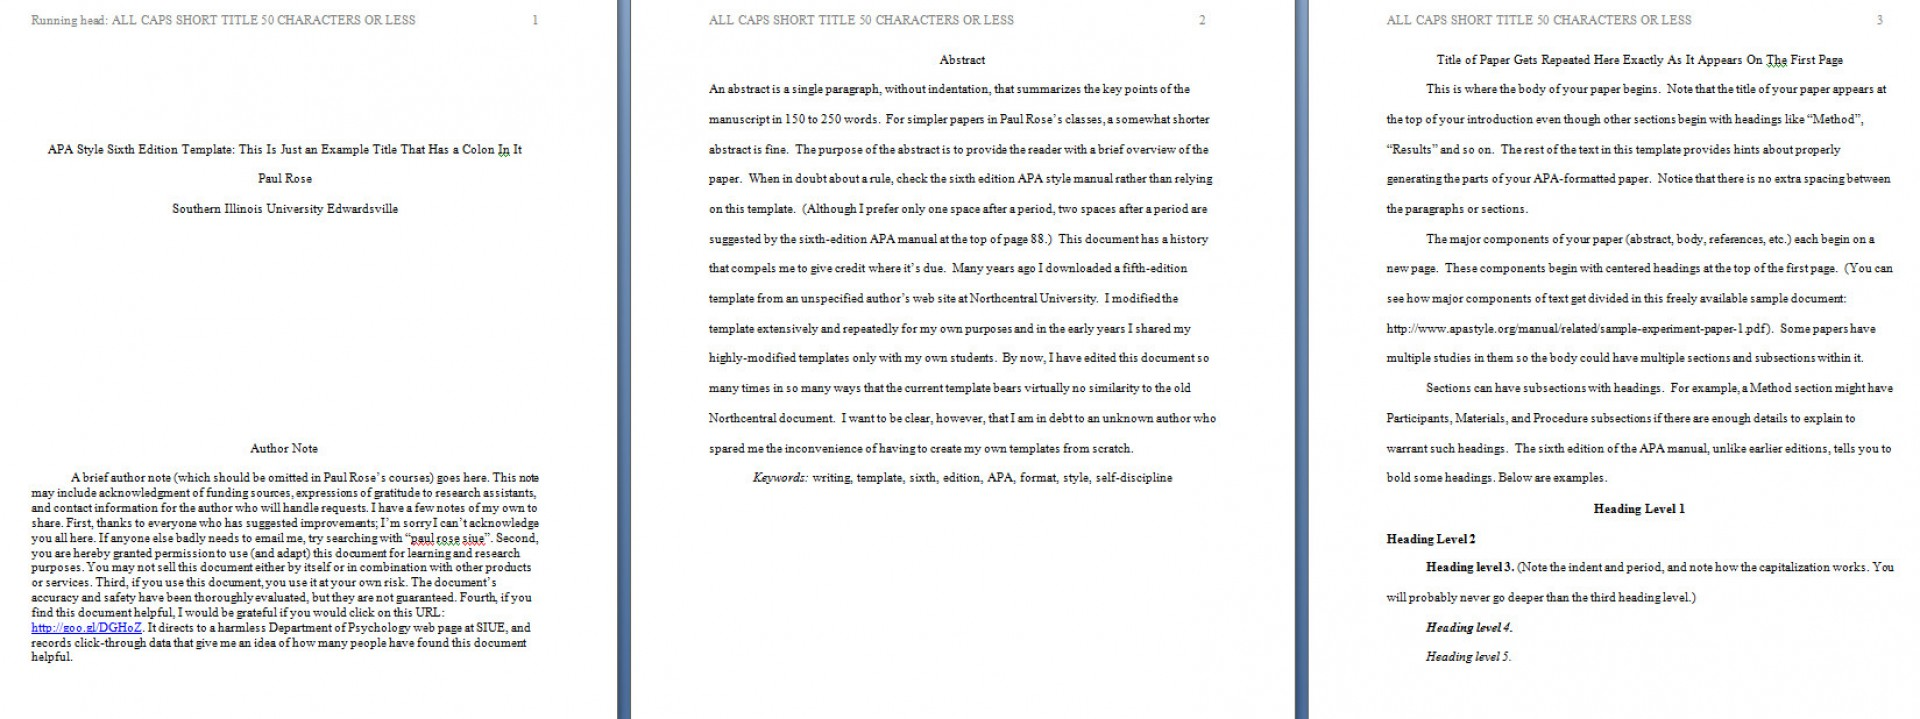 005 Apa Format Template Preview Essay Breathtaking Free Outline Word 2010 1920